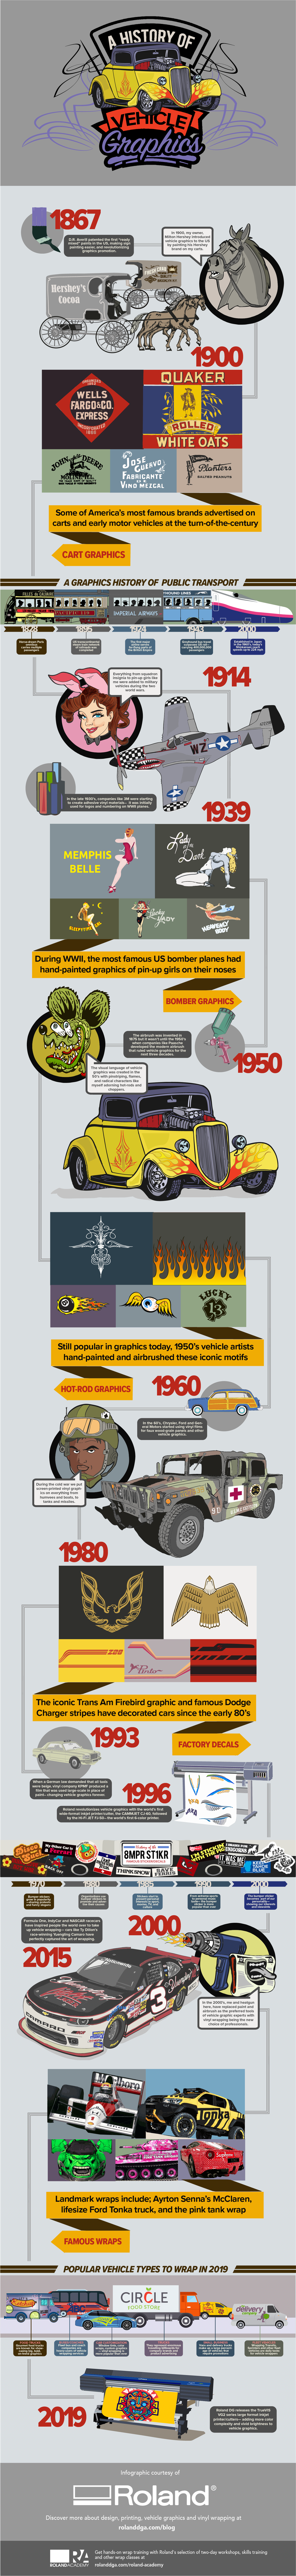 history of vehicle graphics infographic